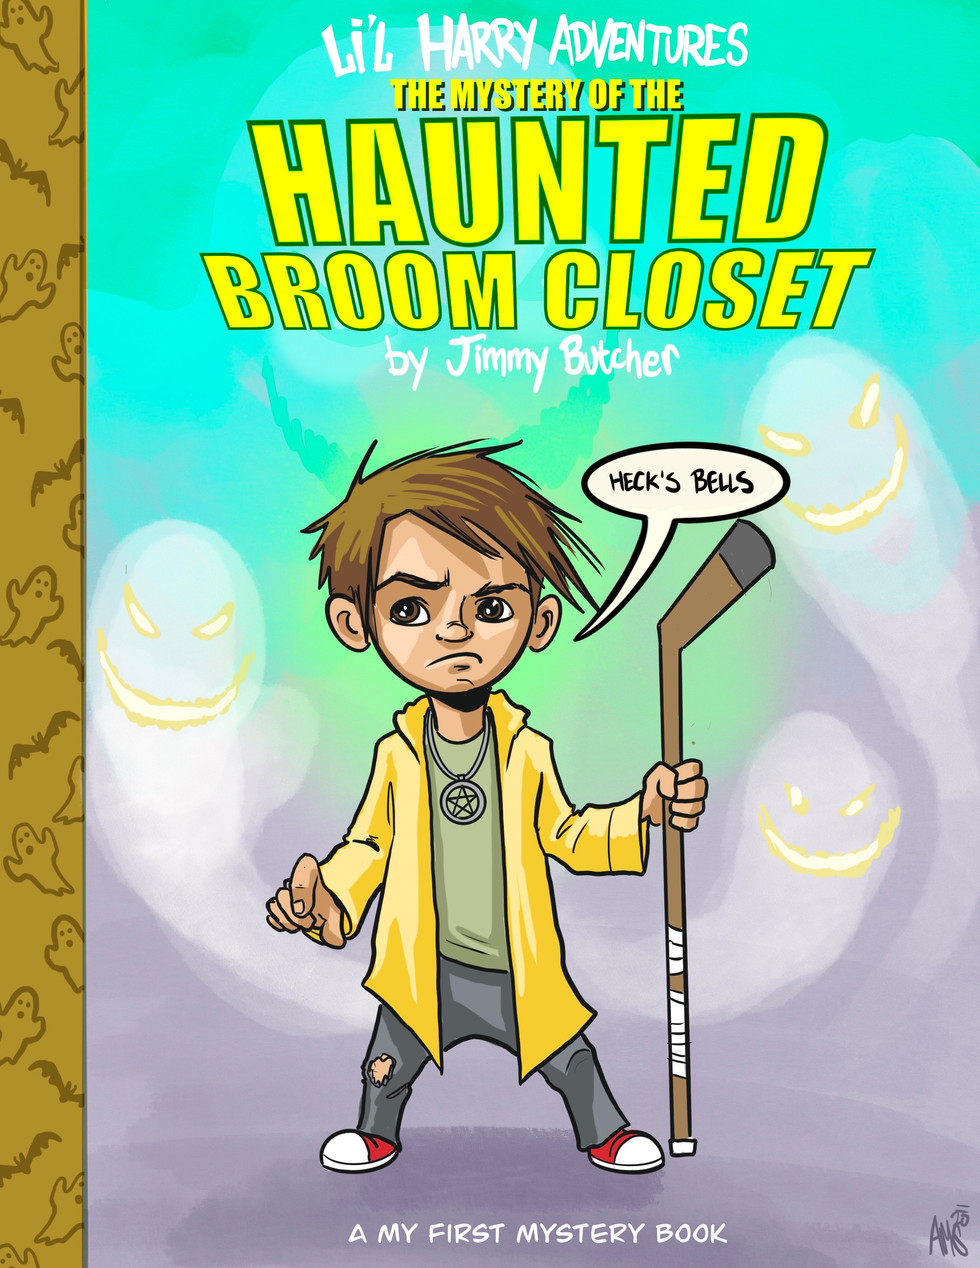 L'il Harry Adventures: Haunted Broom Closet